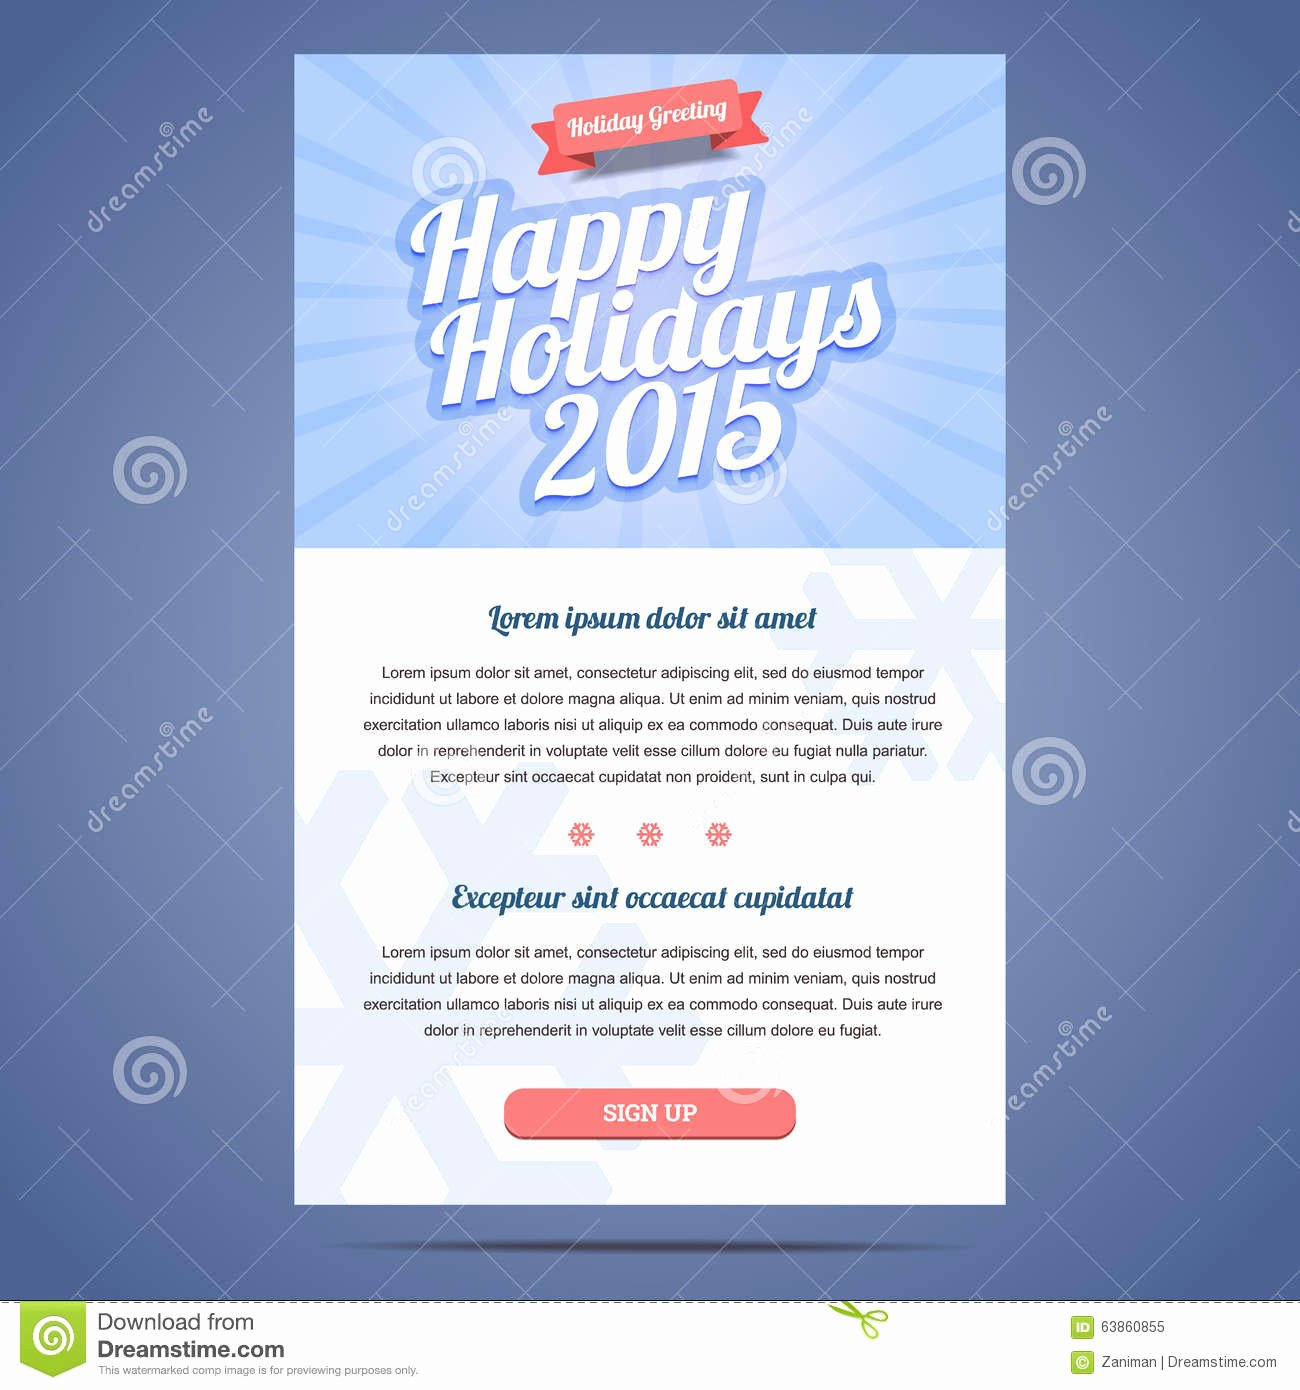 Happy New Year Email Template Lovely Email Template with Greeting Christmas and Happy Stock